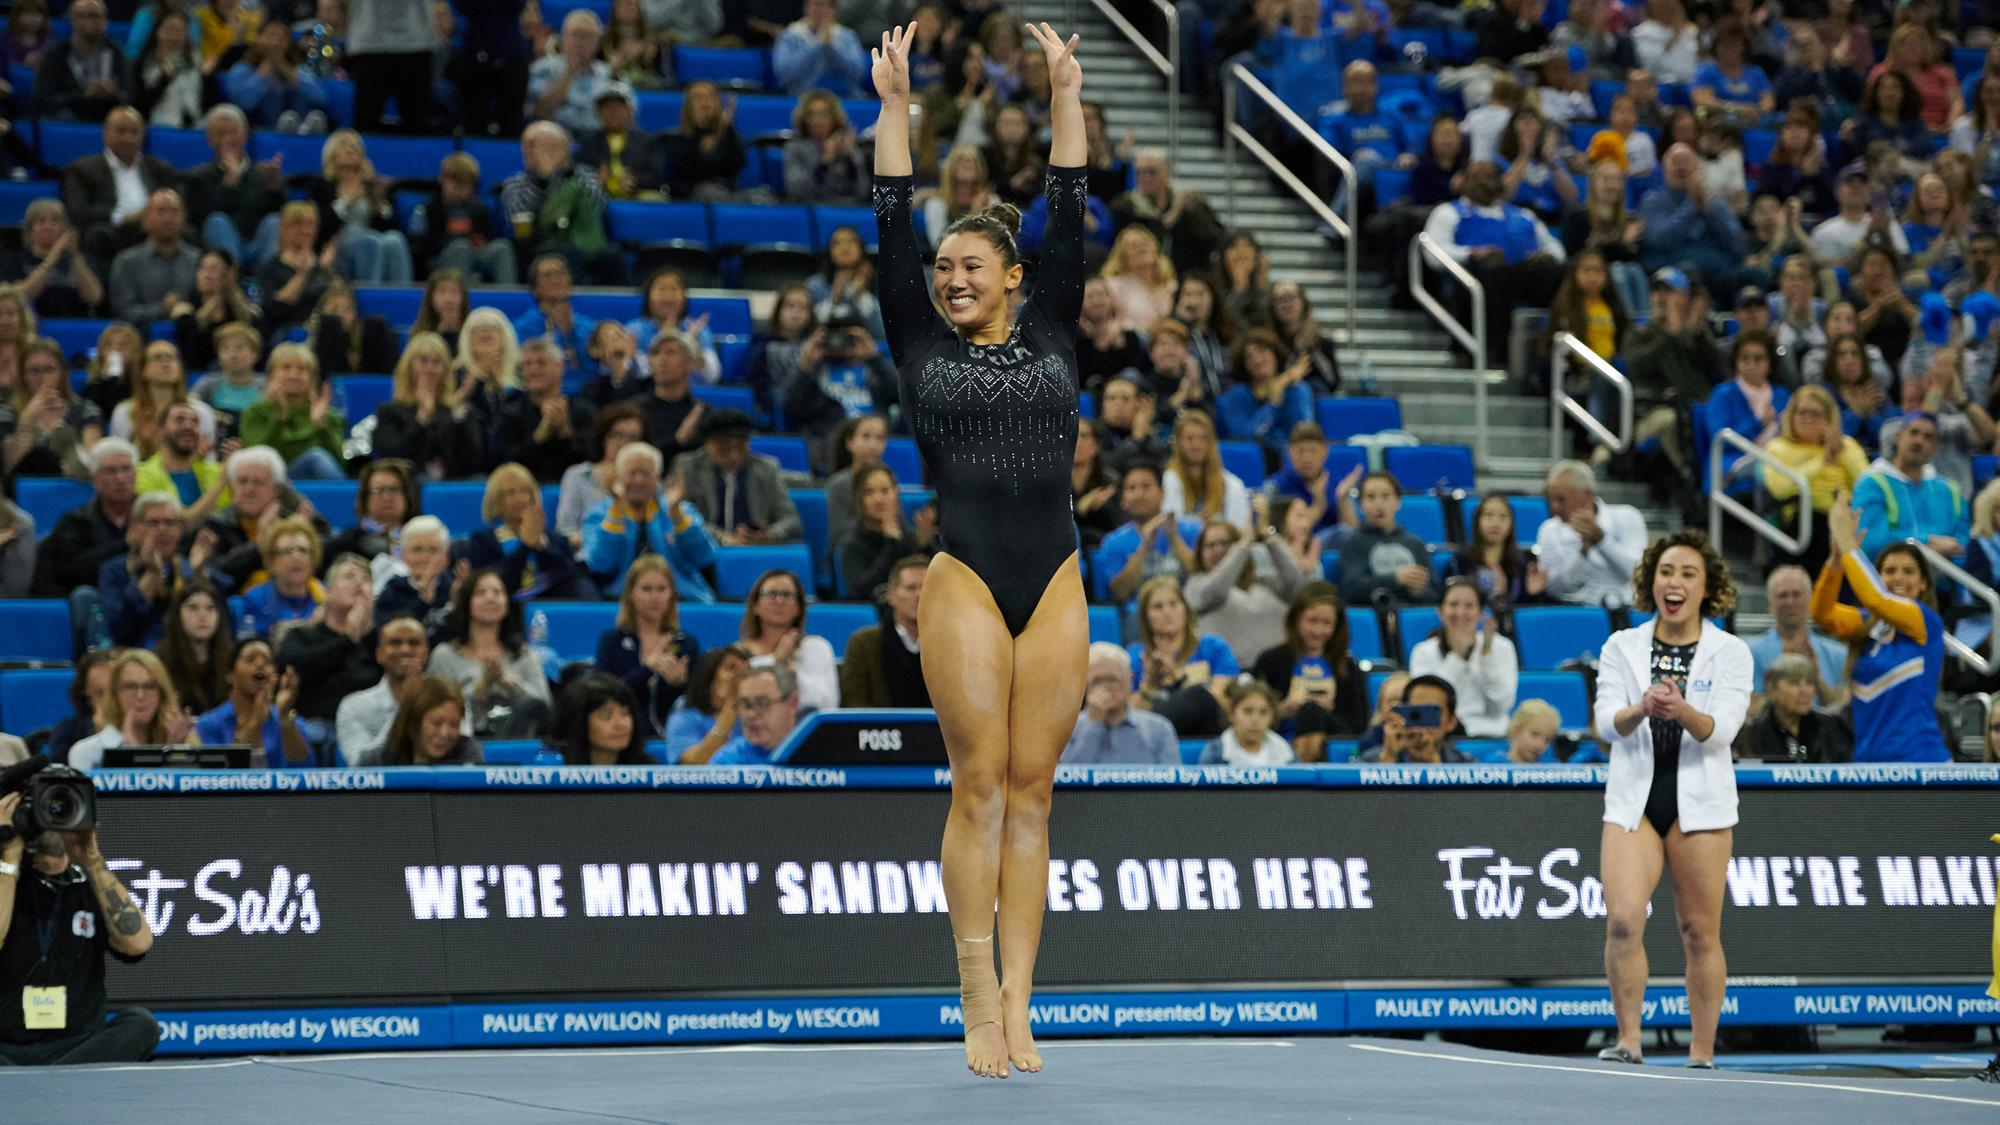 825ffdeb11 Kyla Ross, the clear co-MVP of UCLA's gymnastics team so far this season  along with Katelyn Ohashi (right), due to her back-to-back perfect tens on  vault ...